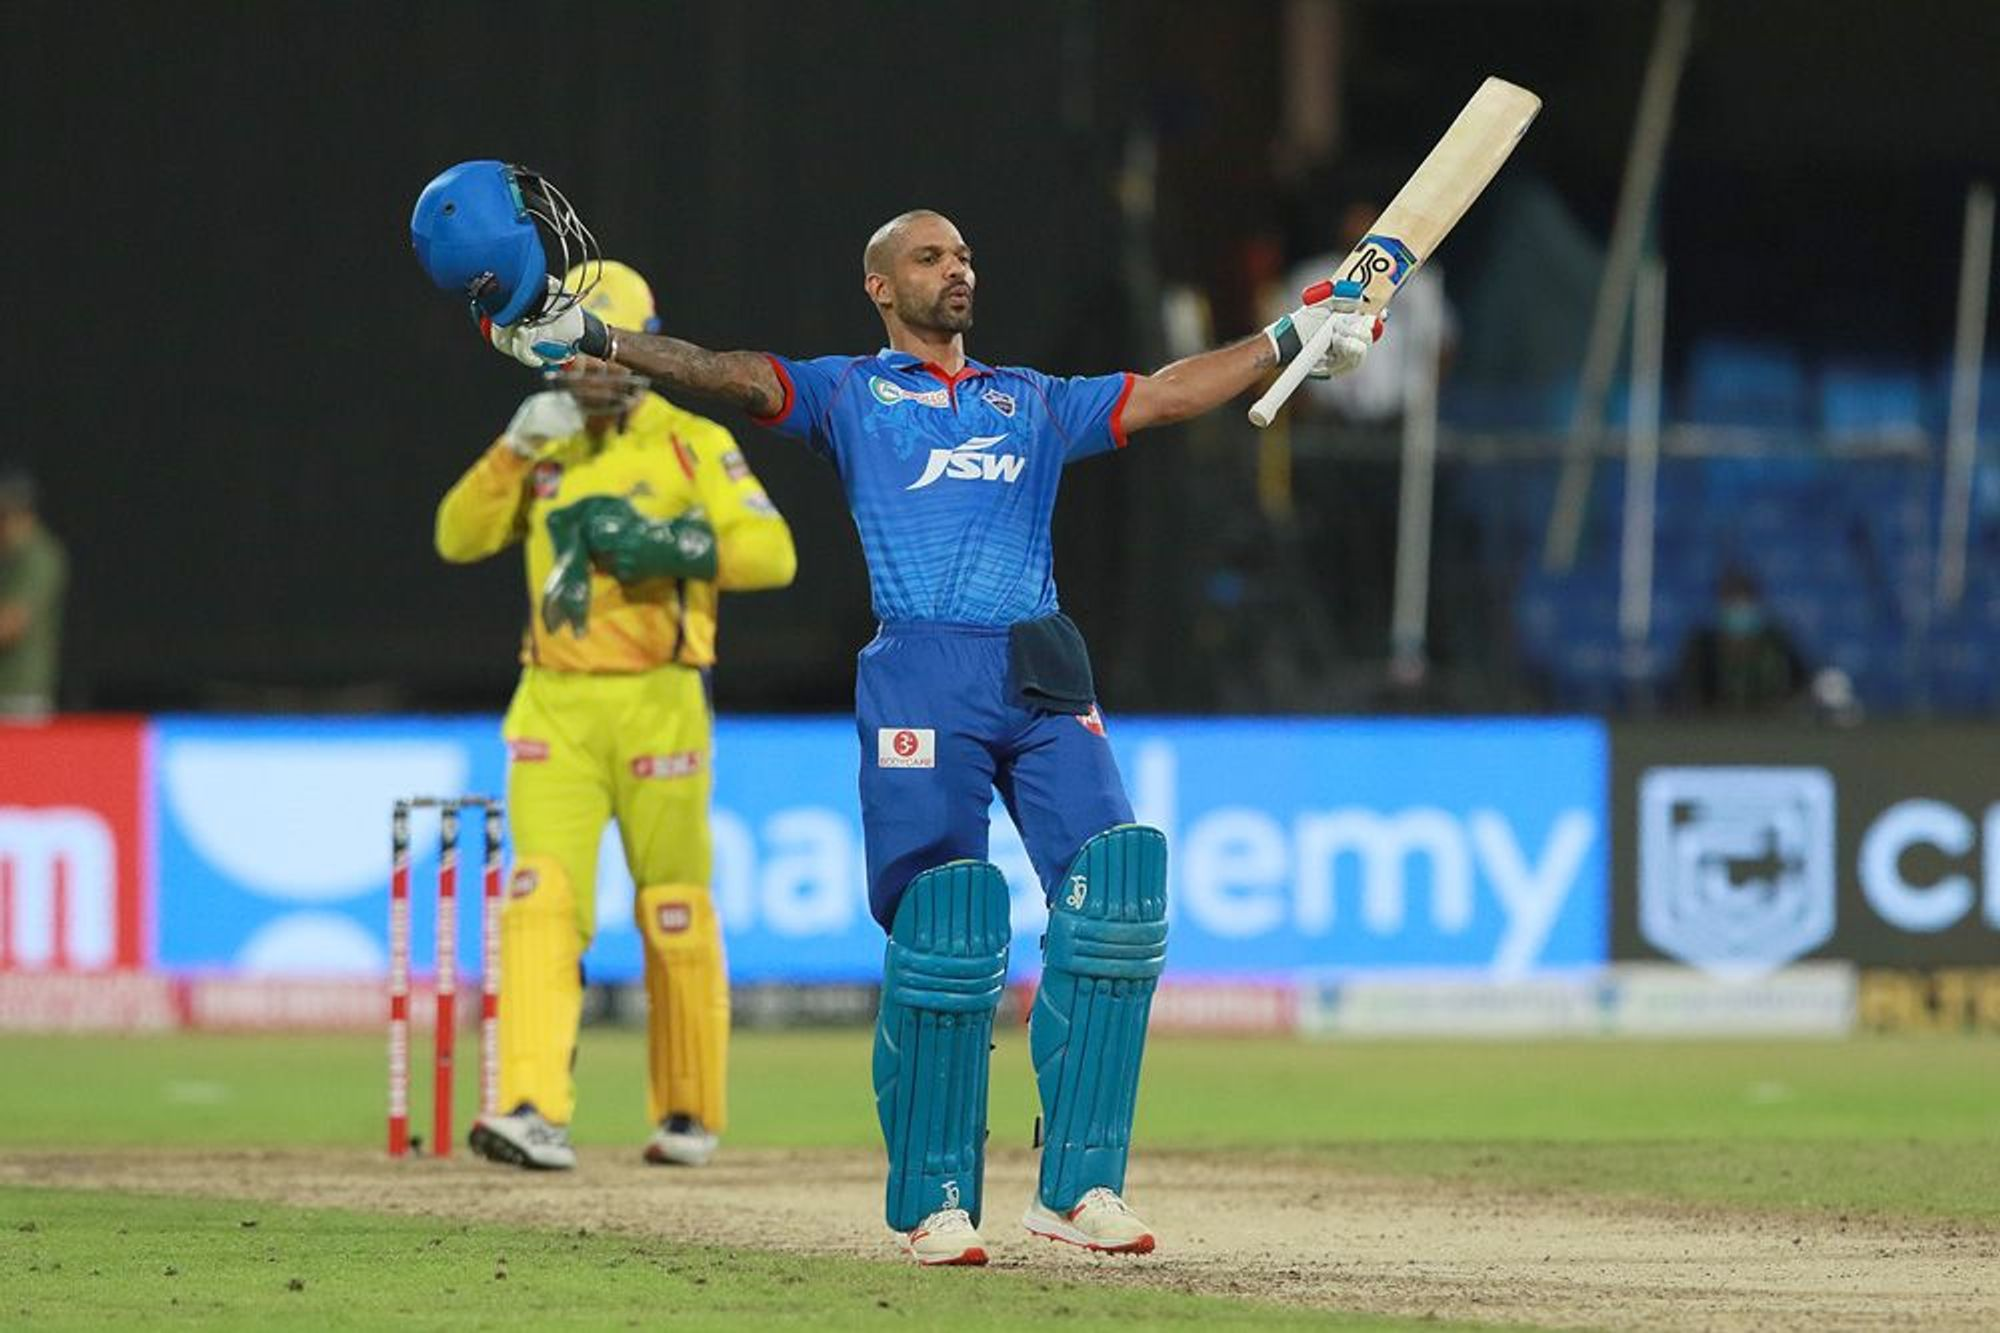 Shikhar Dhawan scored his maiden IPL hundred against CSK in Sharjah. (Photo - BCCI / IPL)